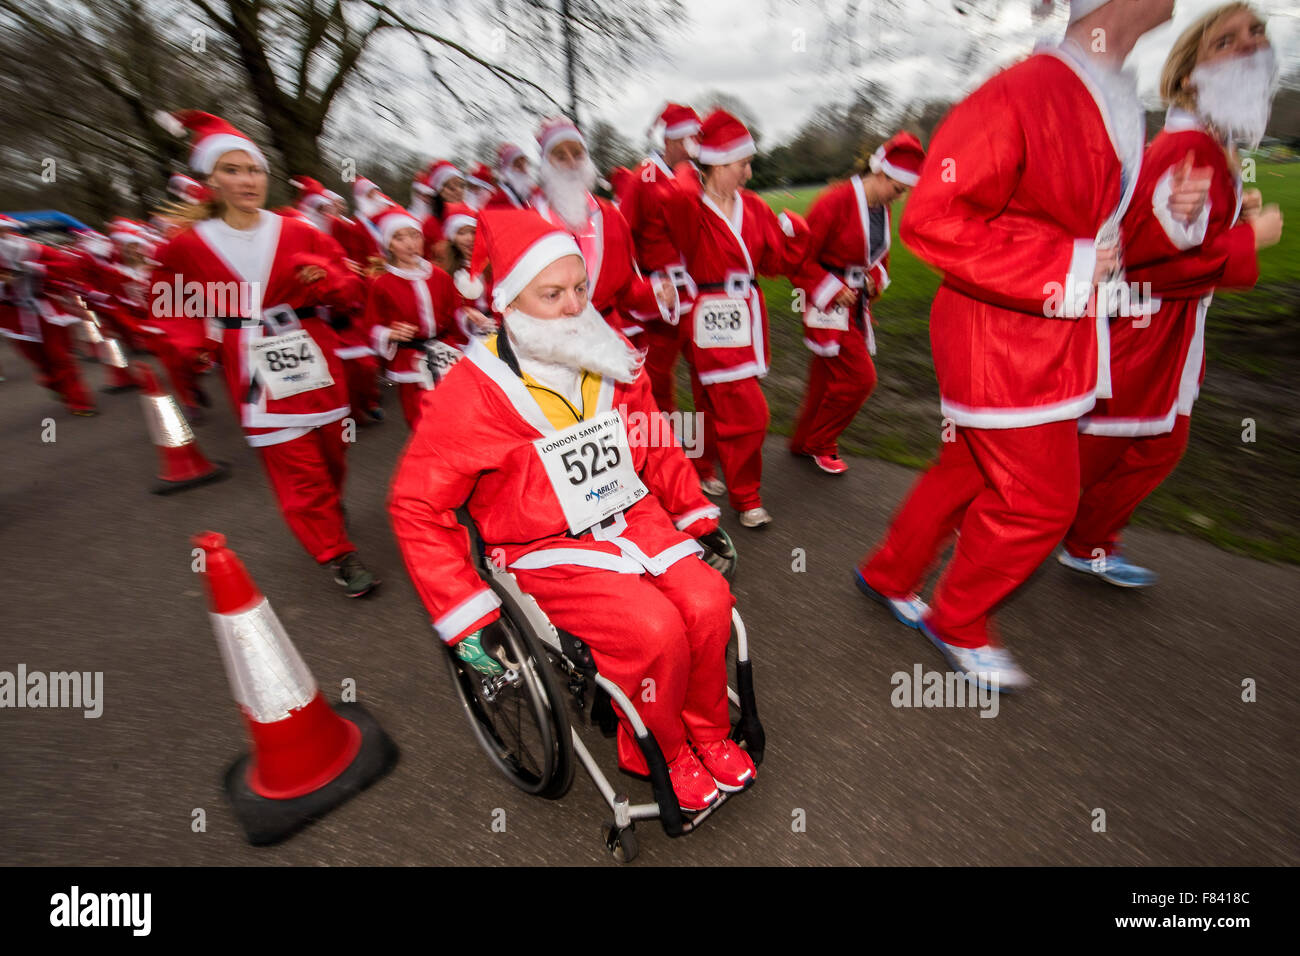 London, UK. 05th Dec, 2015. The start - The London Santa Run 2015 in Battersea Park - 2,000 Santa's take part - Stock Image